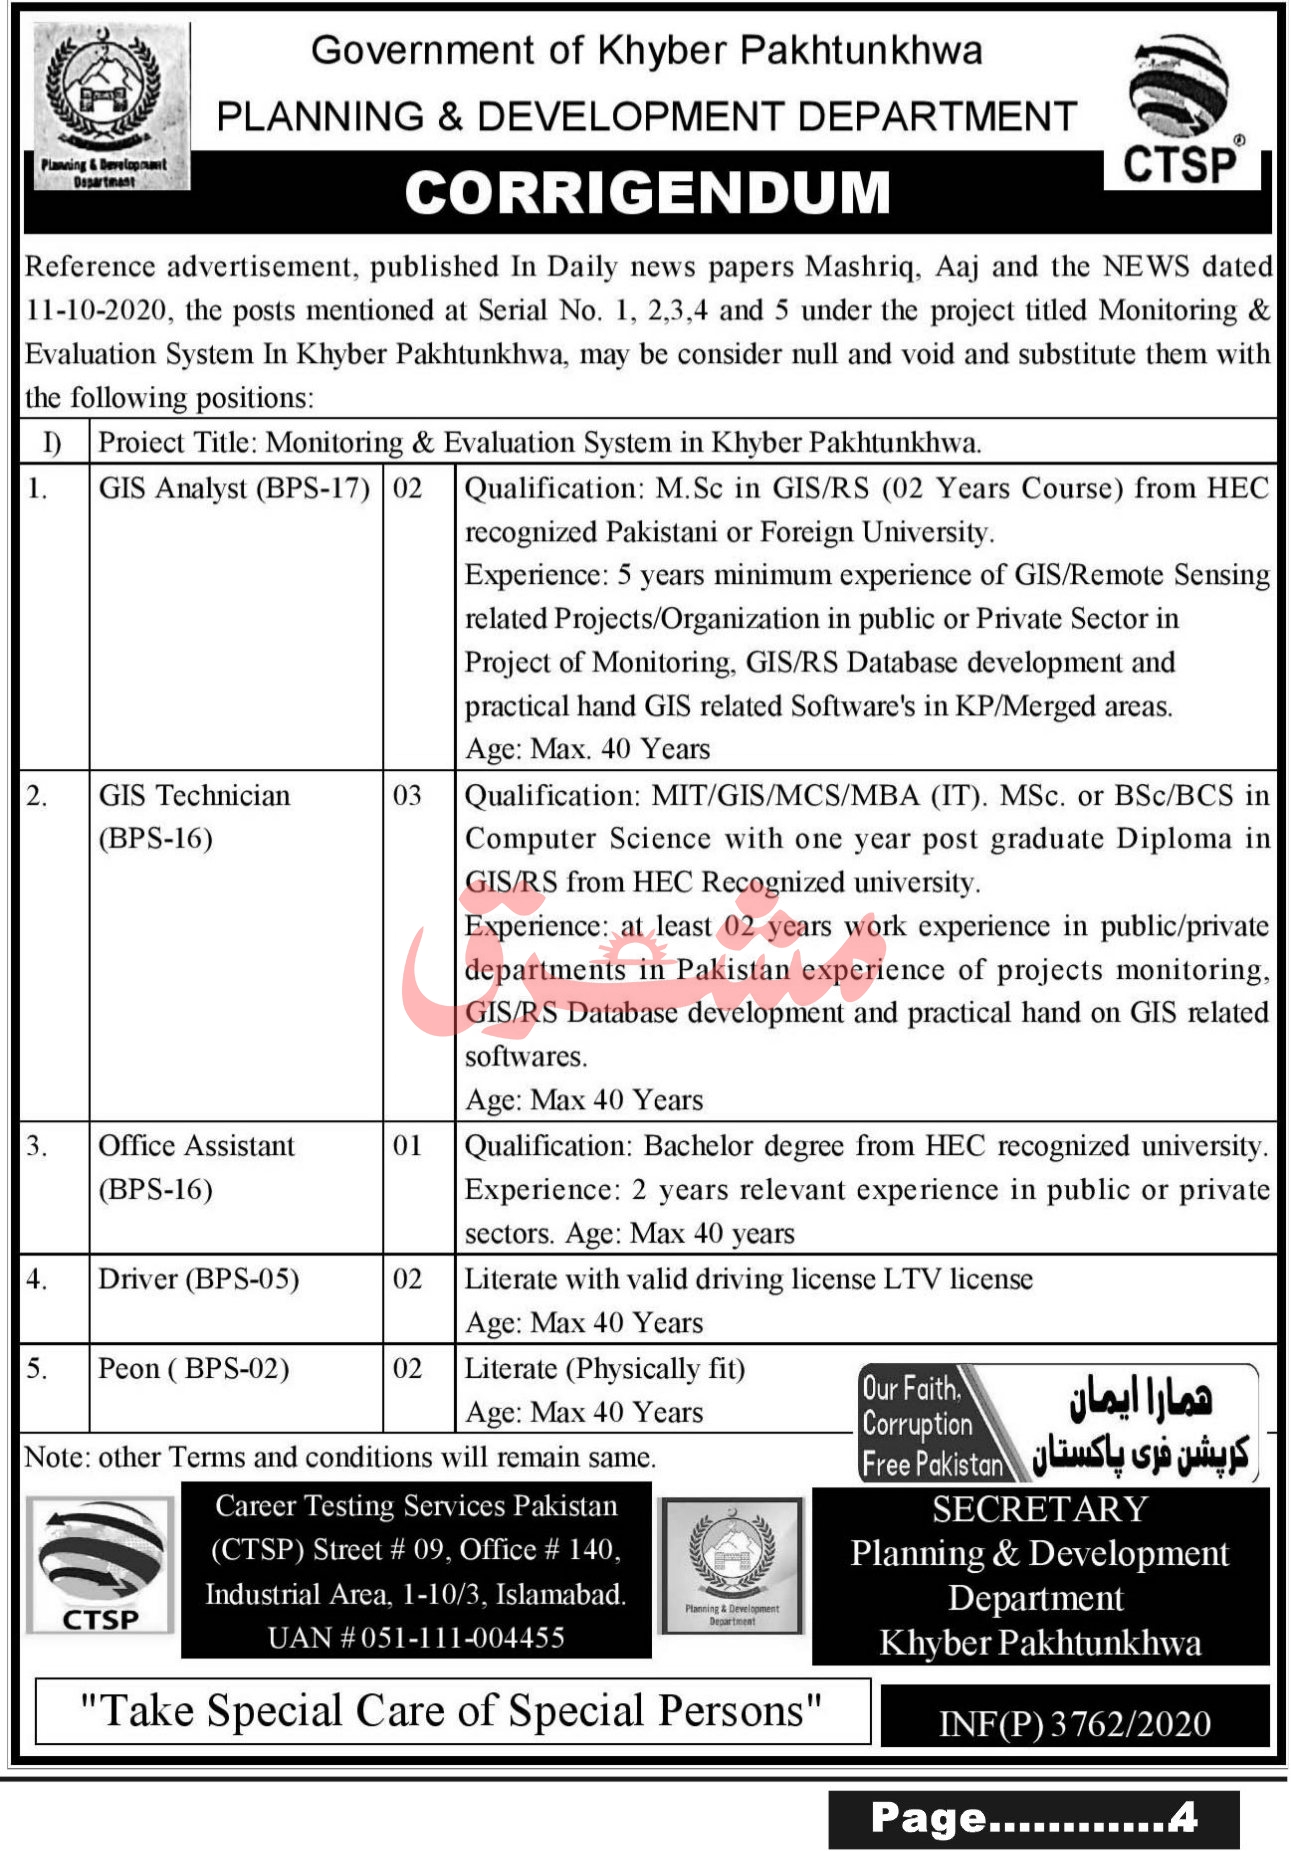 Government of Khyber Pakhtunkhwa Planning & Development Department Jobs October 2020